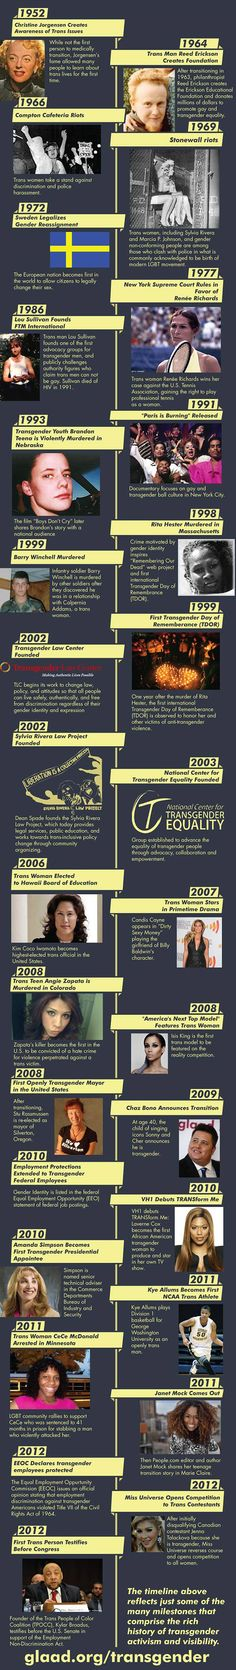 Today is #Transgender Awareness day. Check out this awesome Trans history timeline. #TDOR #LGBTQ